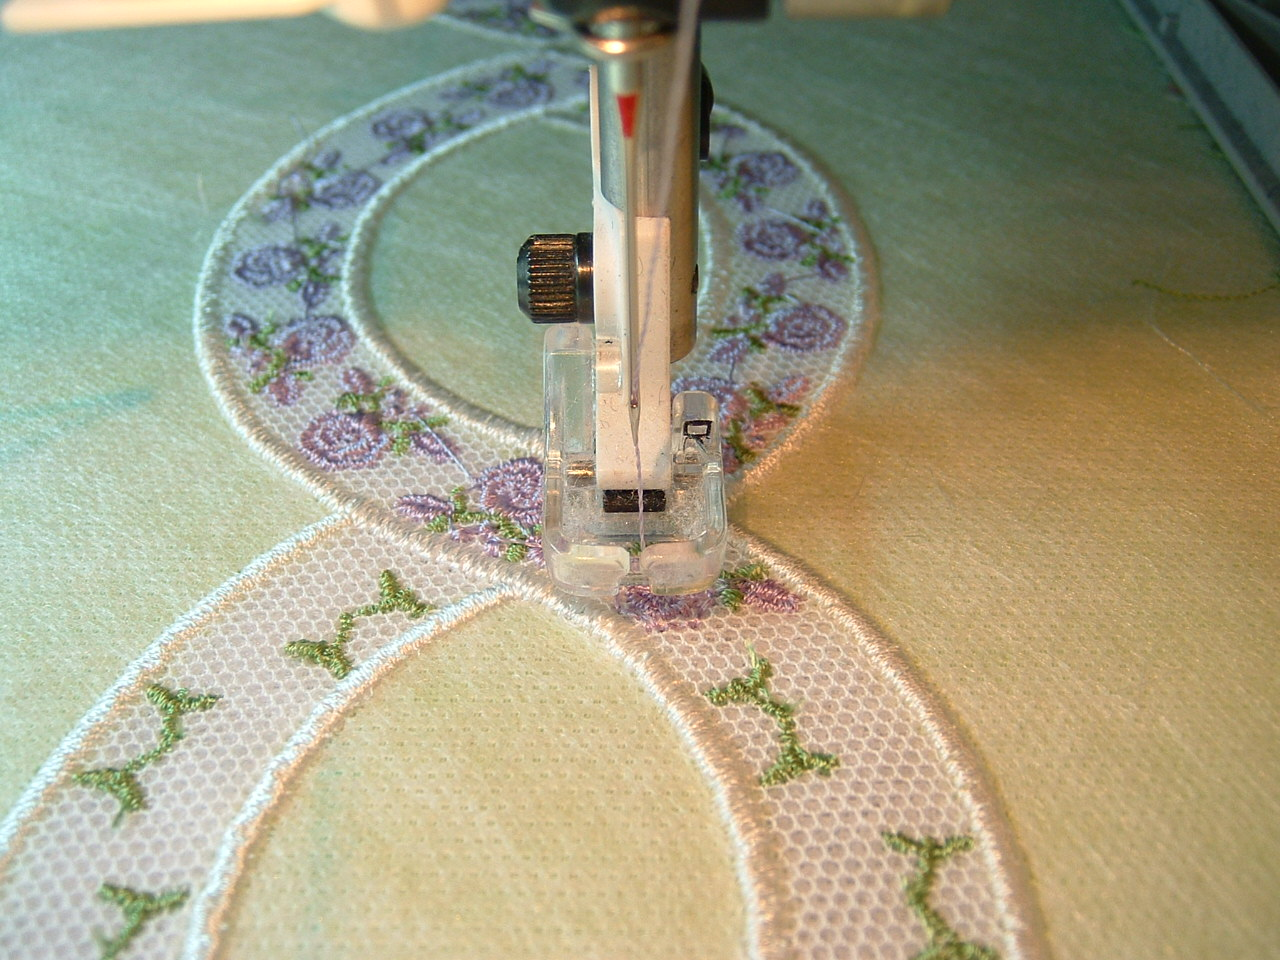 Embroidering on a Machine